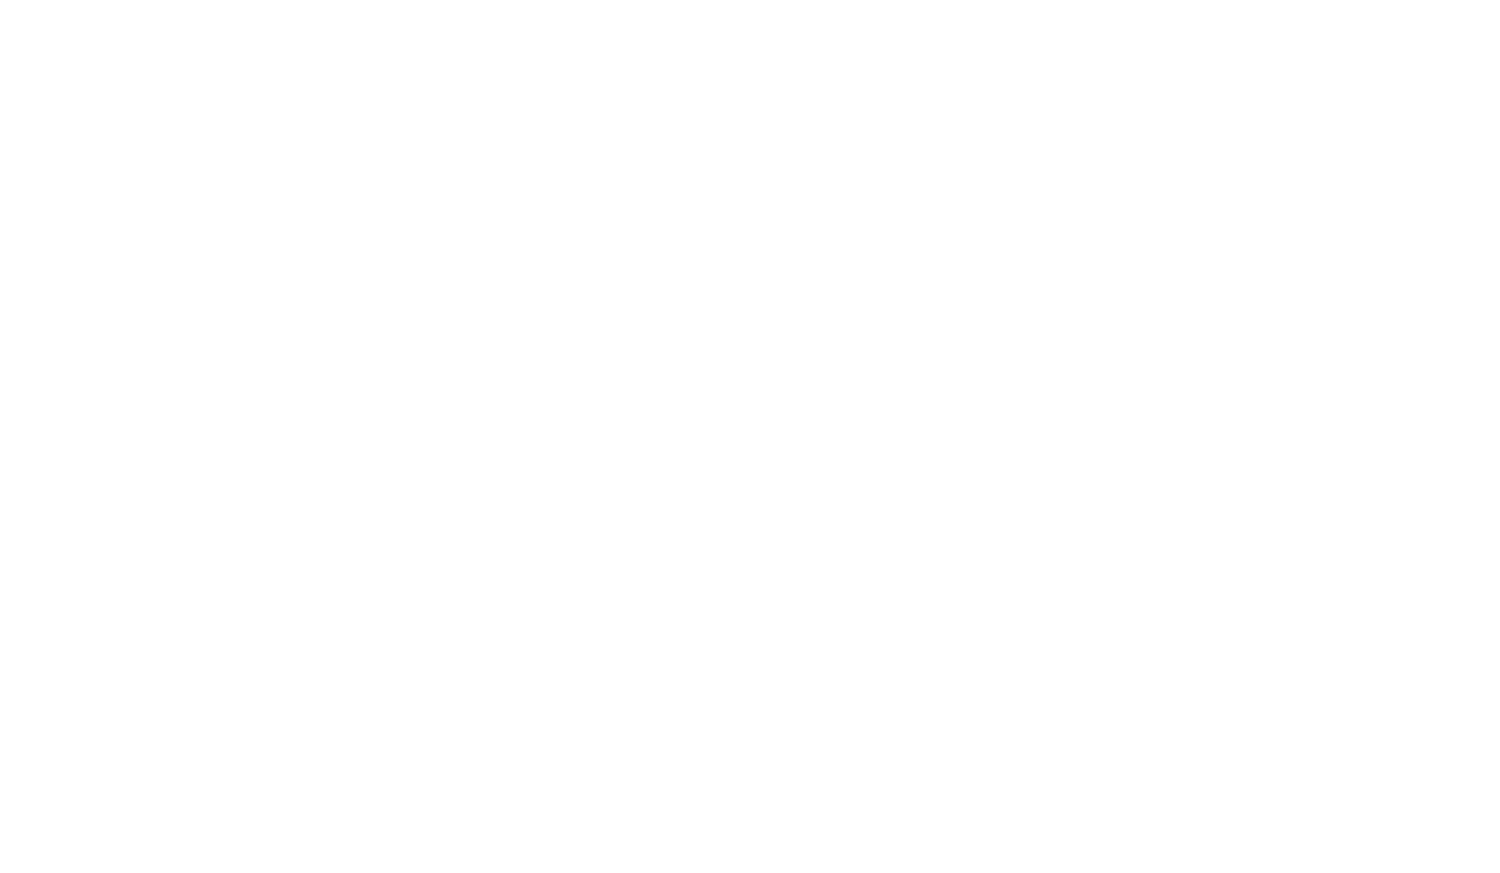 Off The Frame Photography